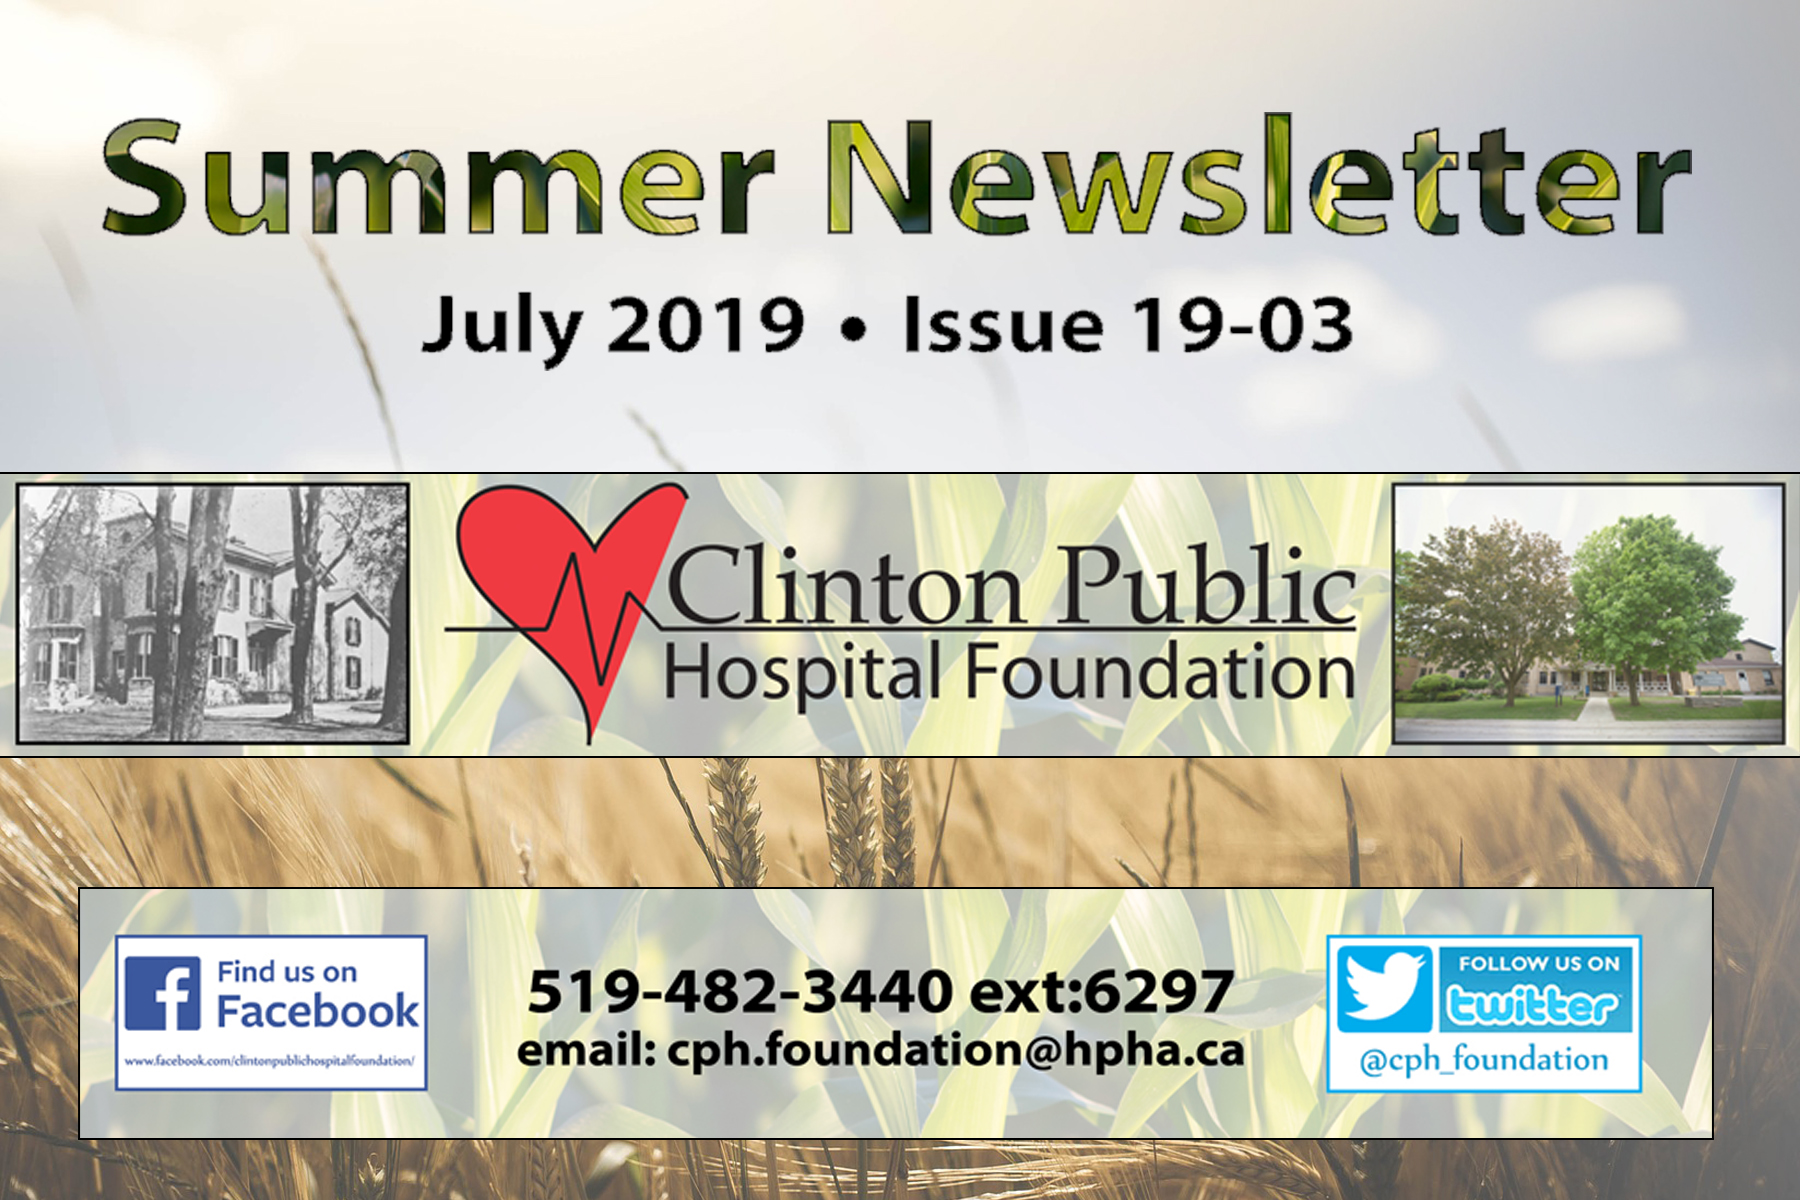 CPHF Summer Newsletter (19-03)